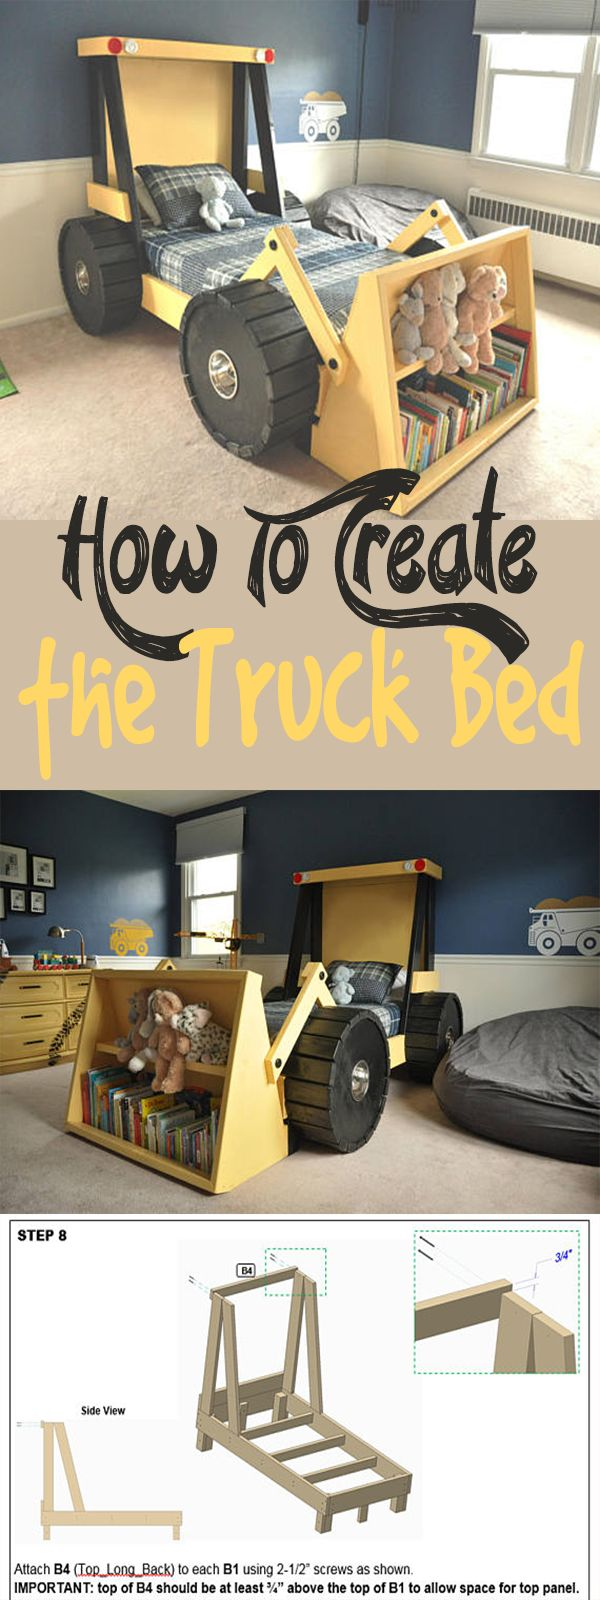 this Construction Truck Bed plan is perfect for a toddler construction themed room! Help your little boy or girl transition from the crib into a bed he or she will actually enjoy sleeping in. They'll love it! | bedroom ideas | bedroom decor | kids bedroom #Ad #toddlerplayhouse